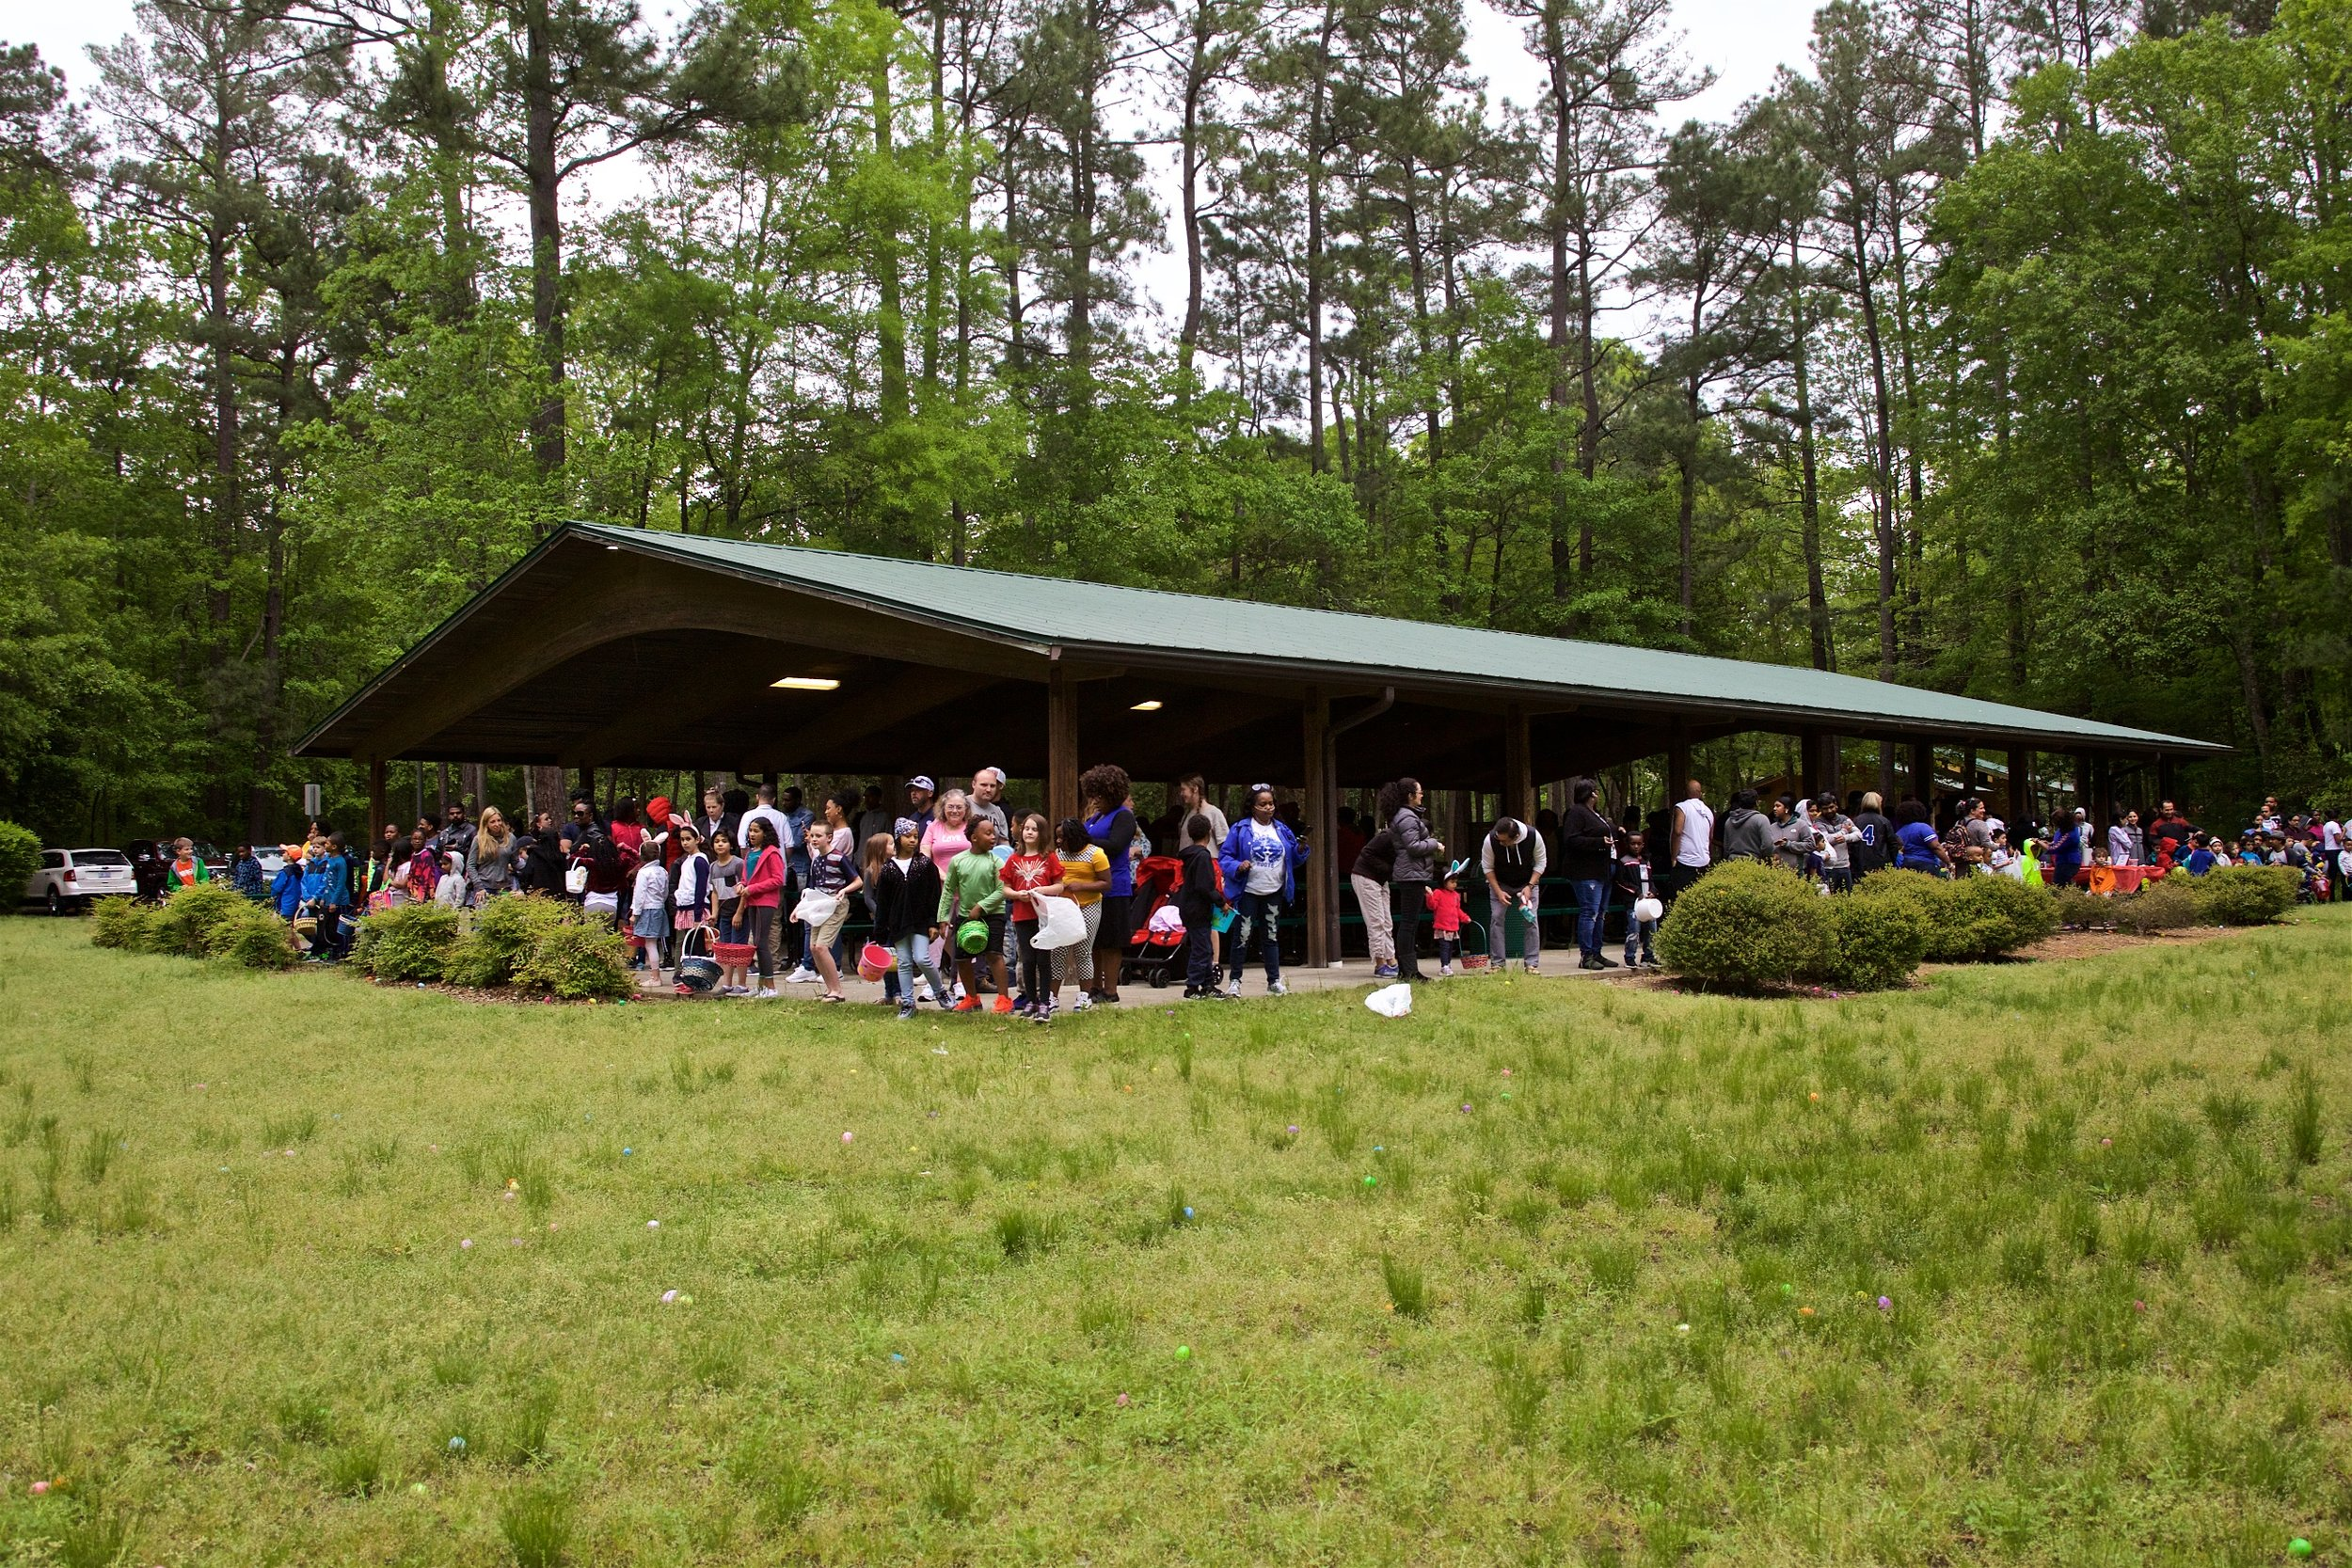 2019.4.20 Raleigh NPHC Easter Egg Hunt by StanChambersJr Photography 15.jpg